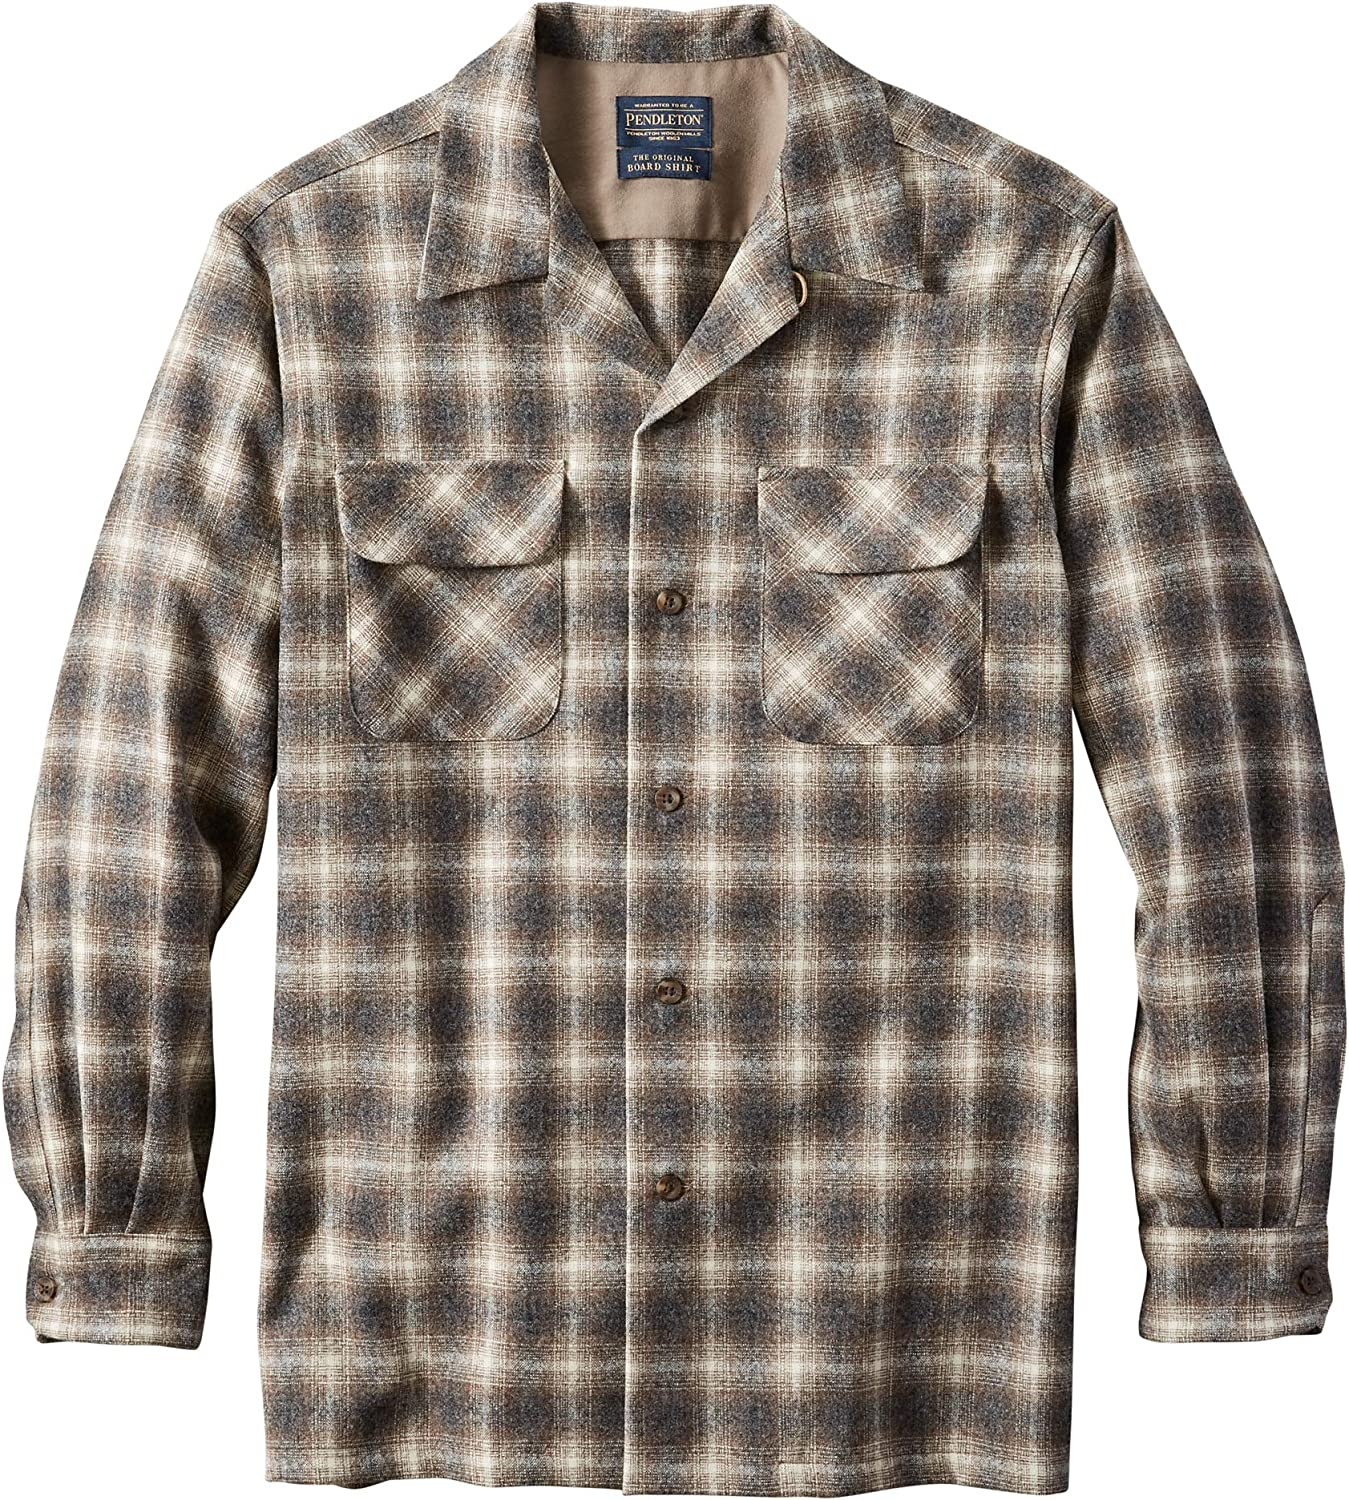 1920s Men's Clothing Pendleton Mens Long Sleeve Classic-fit Board Shirt $149.00 AT vintagedancer.com